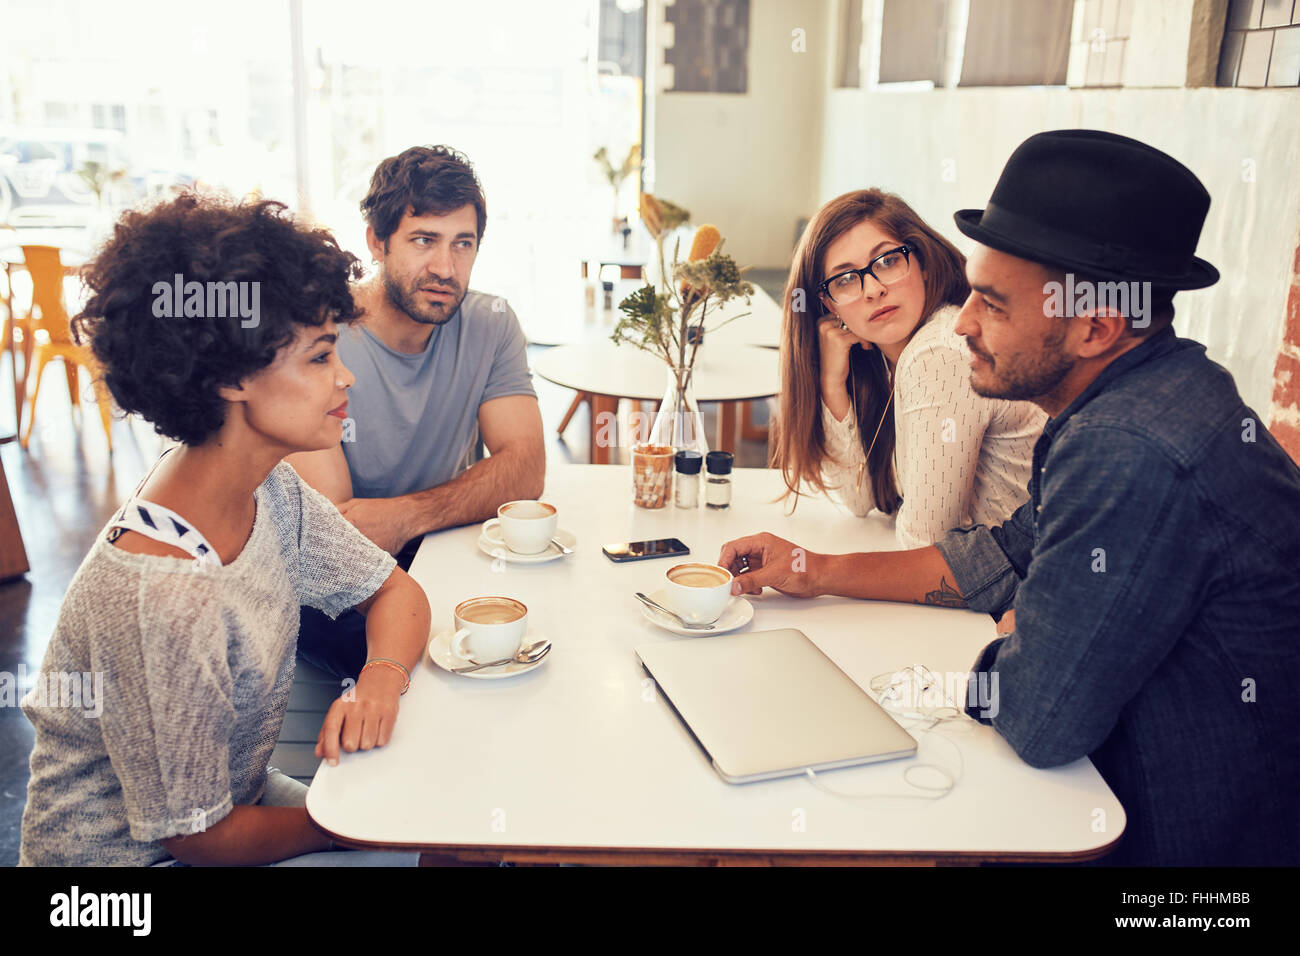 Portrait of young men and women sitting at a cafe table and talking. Group of young friends meeting at a coffee - Stock Image